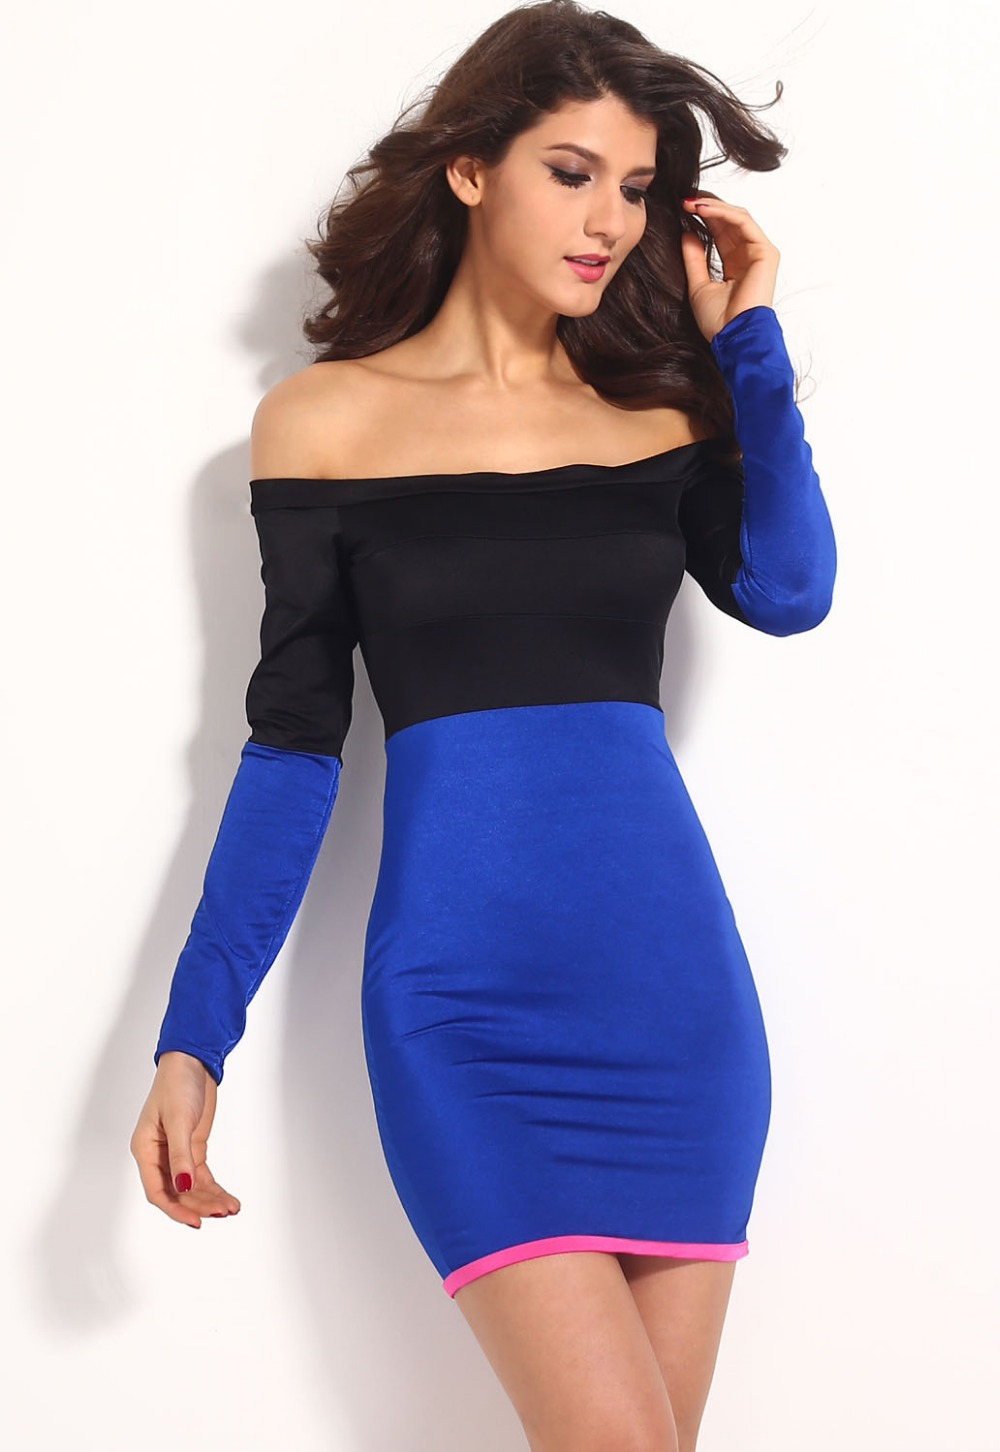 Aliexpress.com : Buy Shiny Black Blue off Shoulder Mini Dress ...